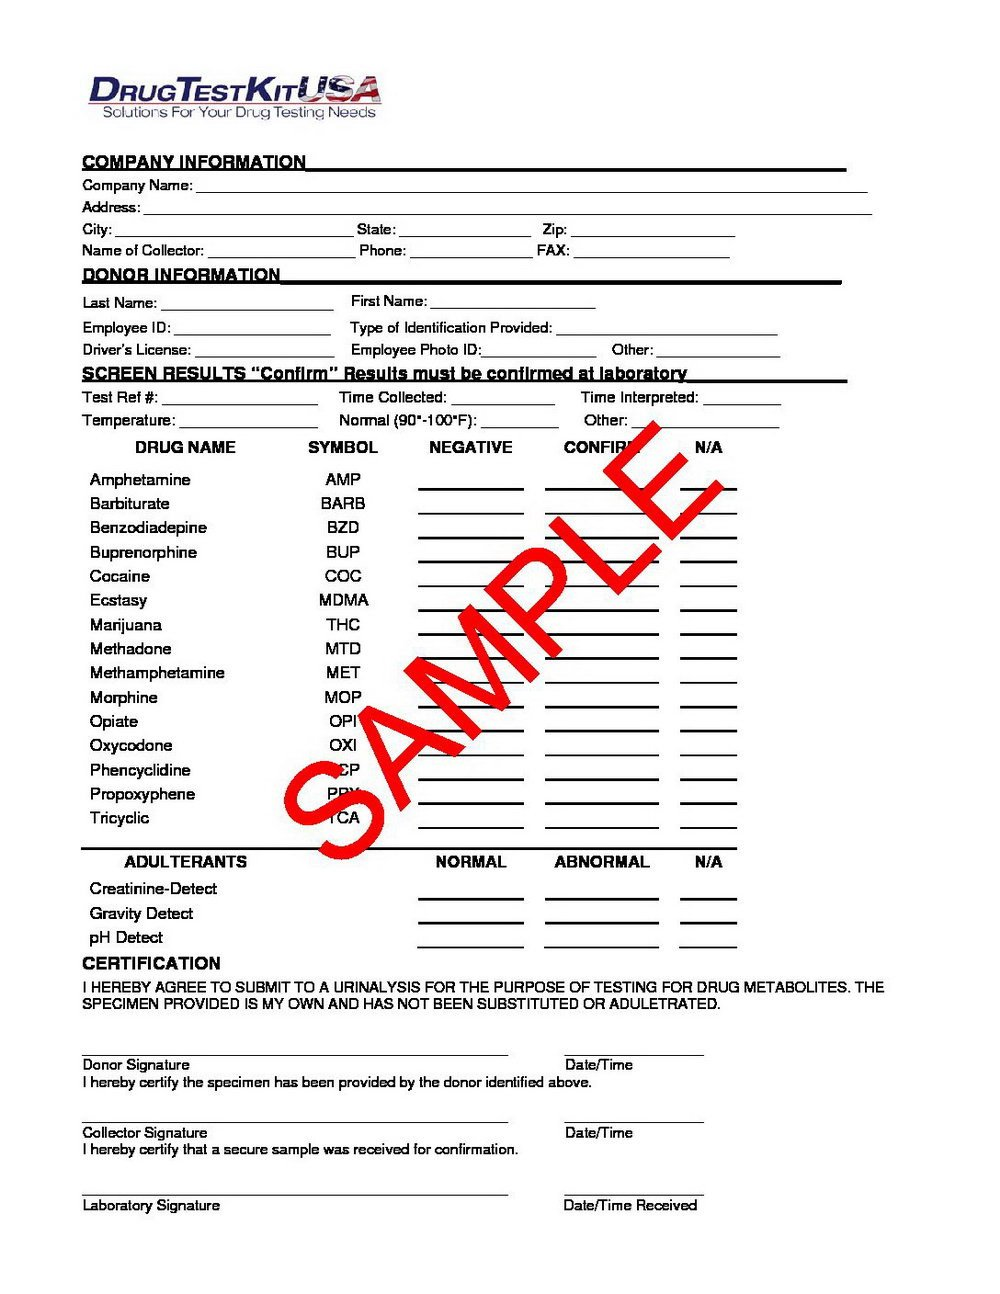 Blank Std Test Results form Negative Std Test Results form 2015 forms 7013